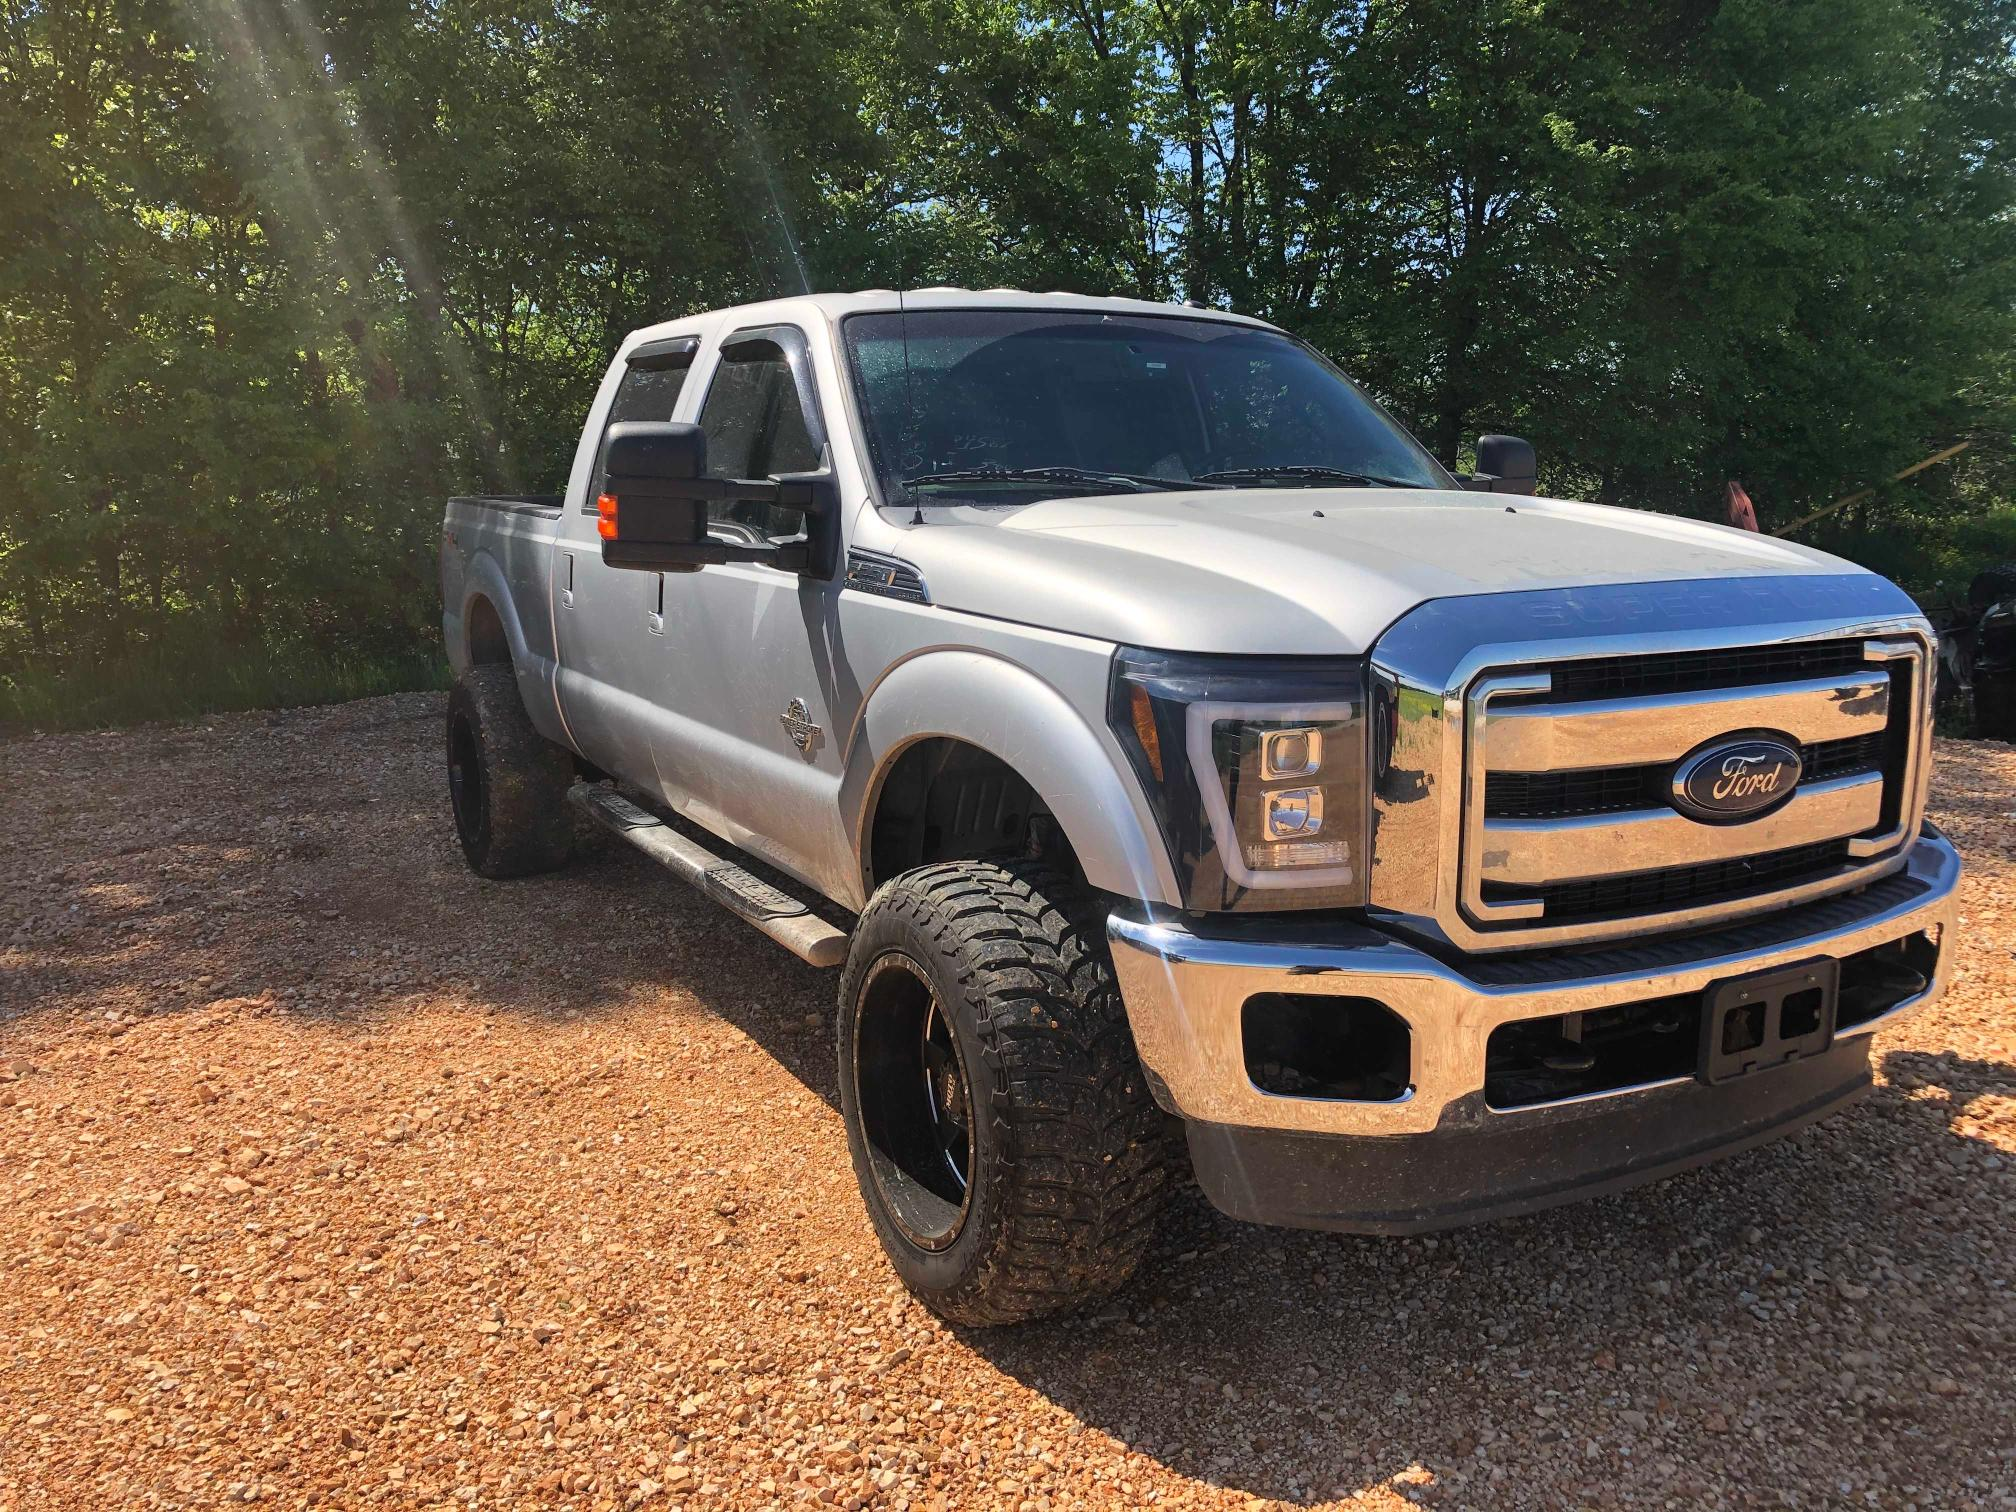 2011 FORD F250 SUPER 1FT7W2BT3BEB38282